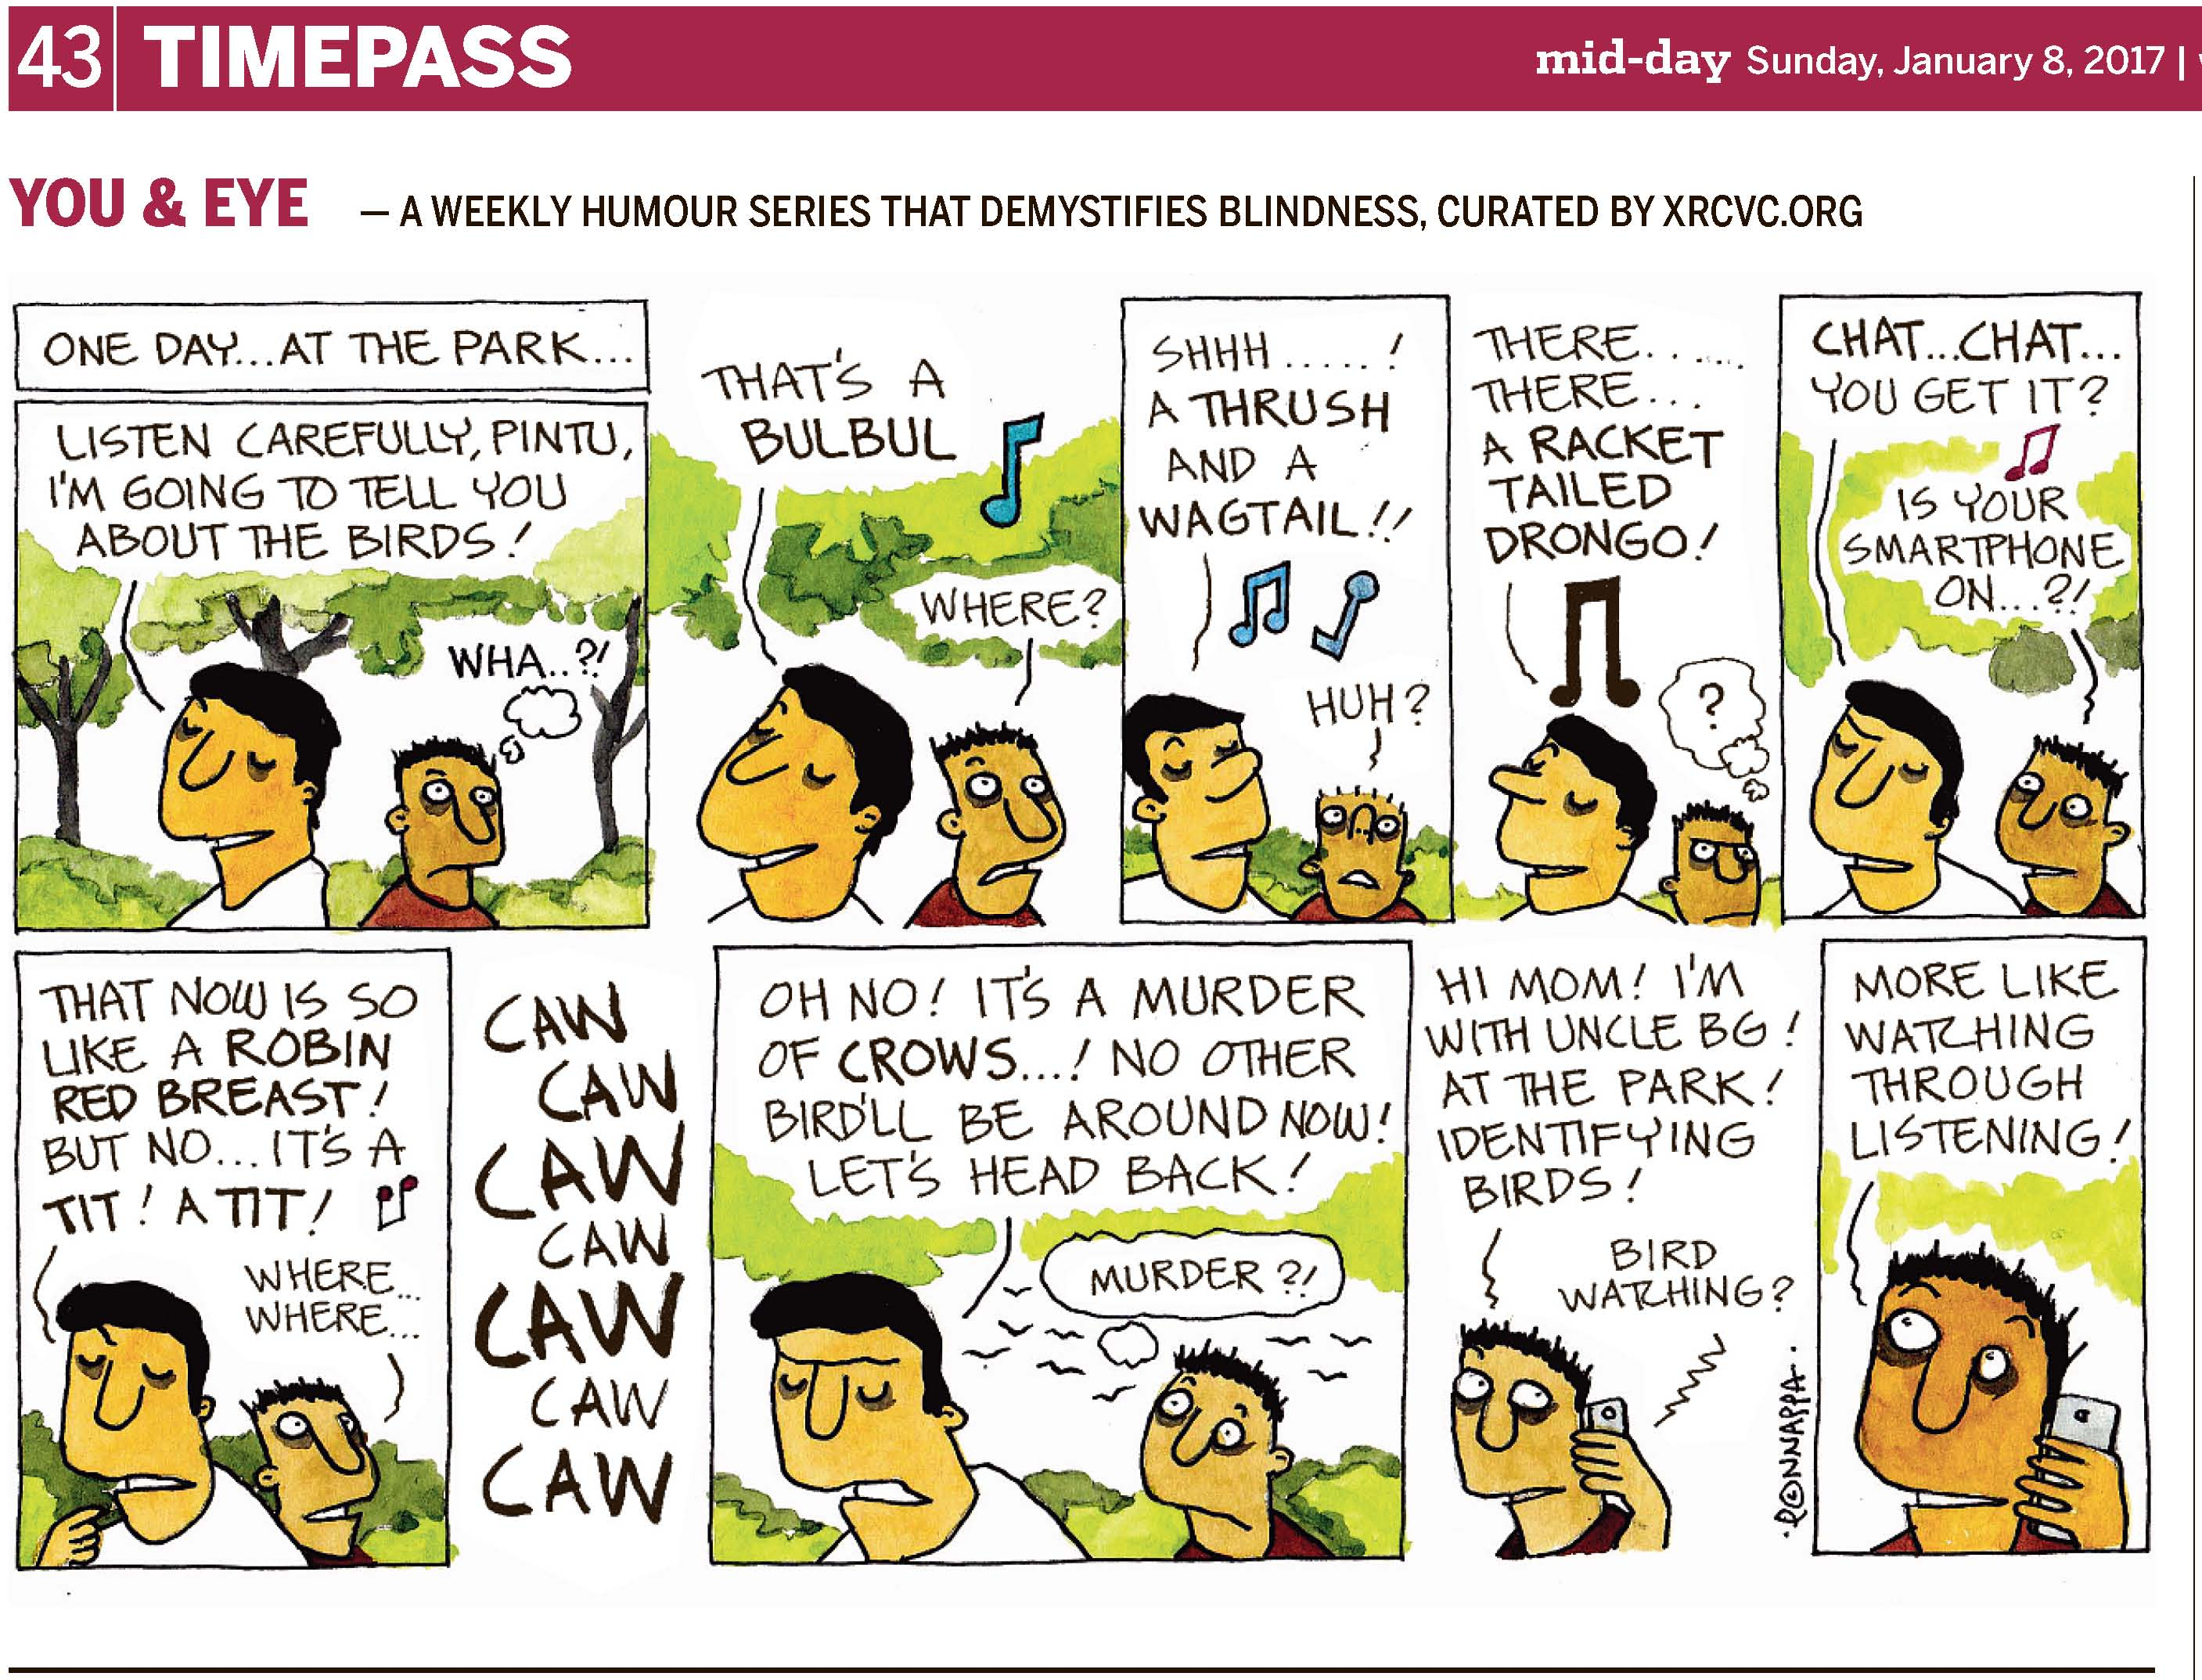 (top-left) 43 | TIMEPASS (top-right) mid-day Sunday, January 8, 2017 YOU & EYE – A WEEKLY HUMOUR SERIES THAT DEMYSTIFIES BLINDNESS, CURATED BY XRCVC.ORG Image description: A cartoon strip with 10 frames… Frame 1: (BG is smiling while facing the left, and his nephew, Pintu, faces the right, wide-eyed. They are standing with their backs facing each other, and are surrounded by trees and greenery. ) Text: One day… at the park… BG: Listen carefully, Pintu, I'm going to tell you about the birds! A small thought bubble shows Pintu thinking: Wha…?! Frame 2: (BG continues to smile while Pintu is wide-eyed in wonder. A musical note, representing sound, is seen above them. Trees are seen in the background.) BG: That's a Bulbul! Pintu: Where? Frame 3: (BG now faces the right and looks slightly upward. Pintu's nostrils can be seen as he looks right up with wide eyes. Greenery is seen in the background. Musical notes, representing sound, are above them.) BG: Shhh… ! A Trush and a Wagtail!! Pintu: